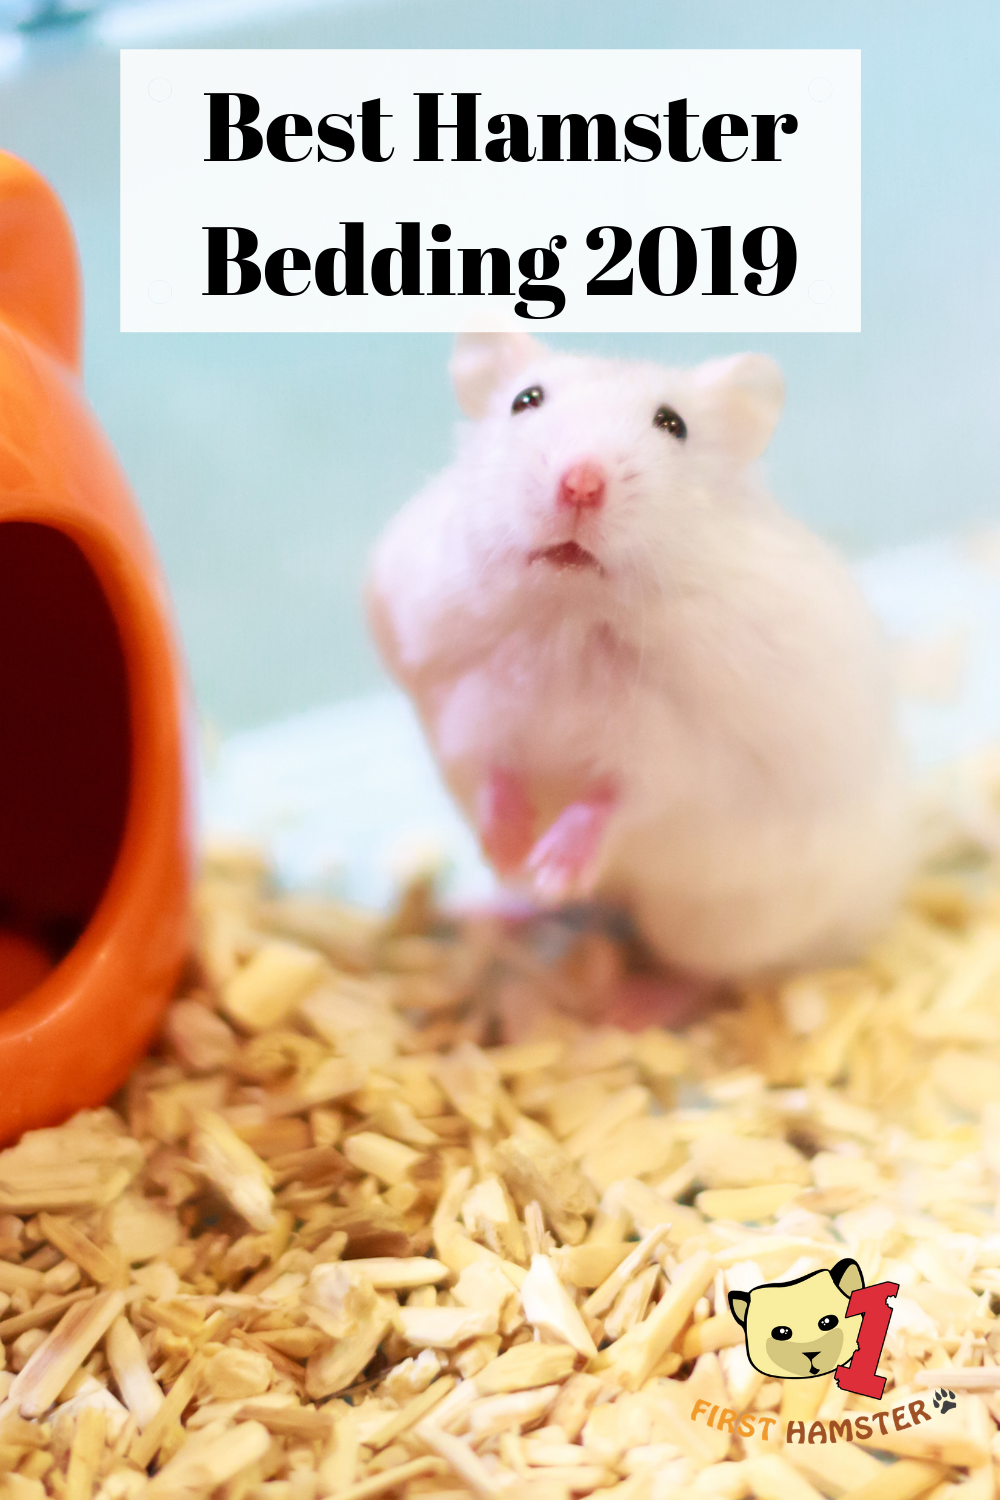 Best Hamster Bedding/Substrate Options 2019 We'll look